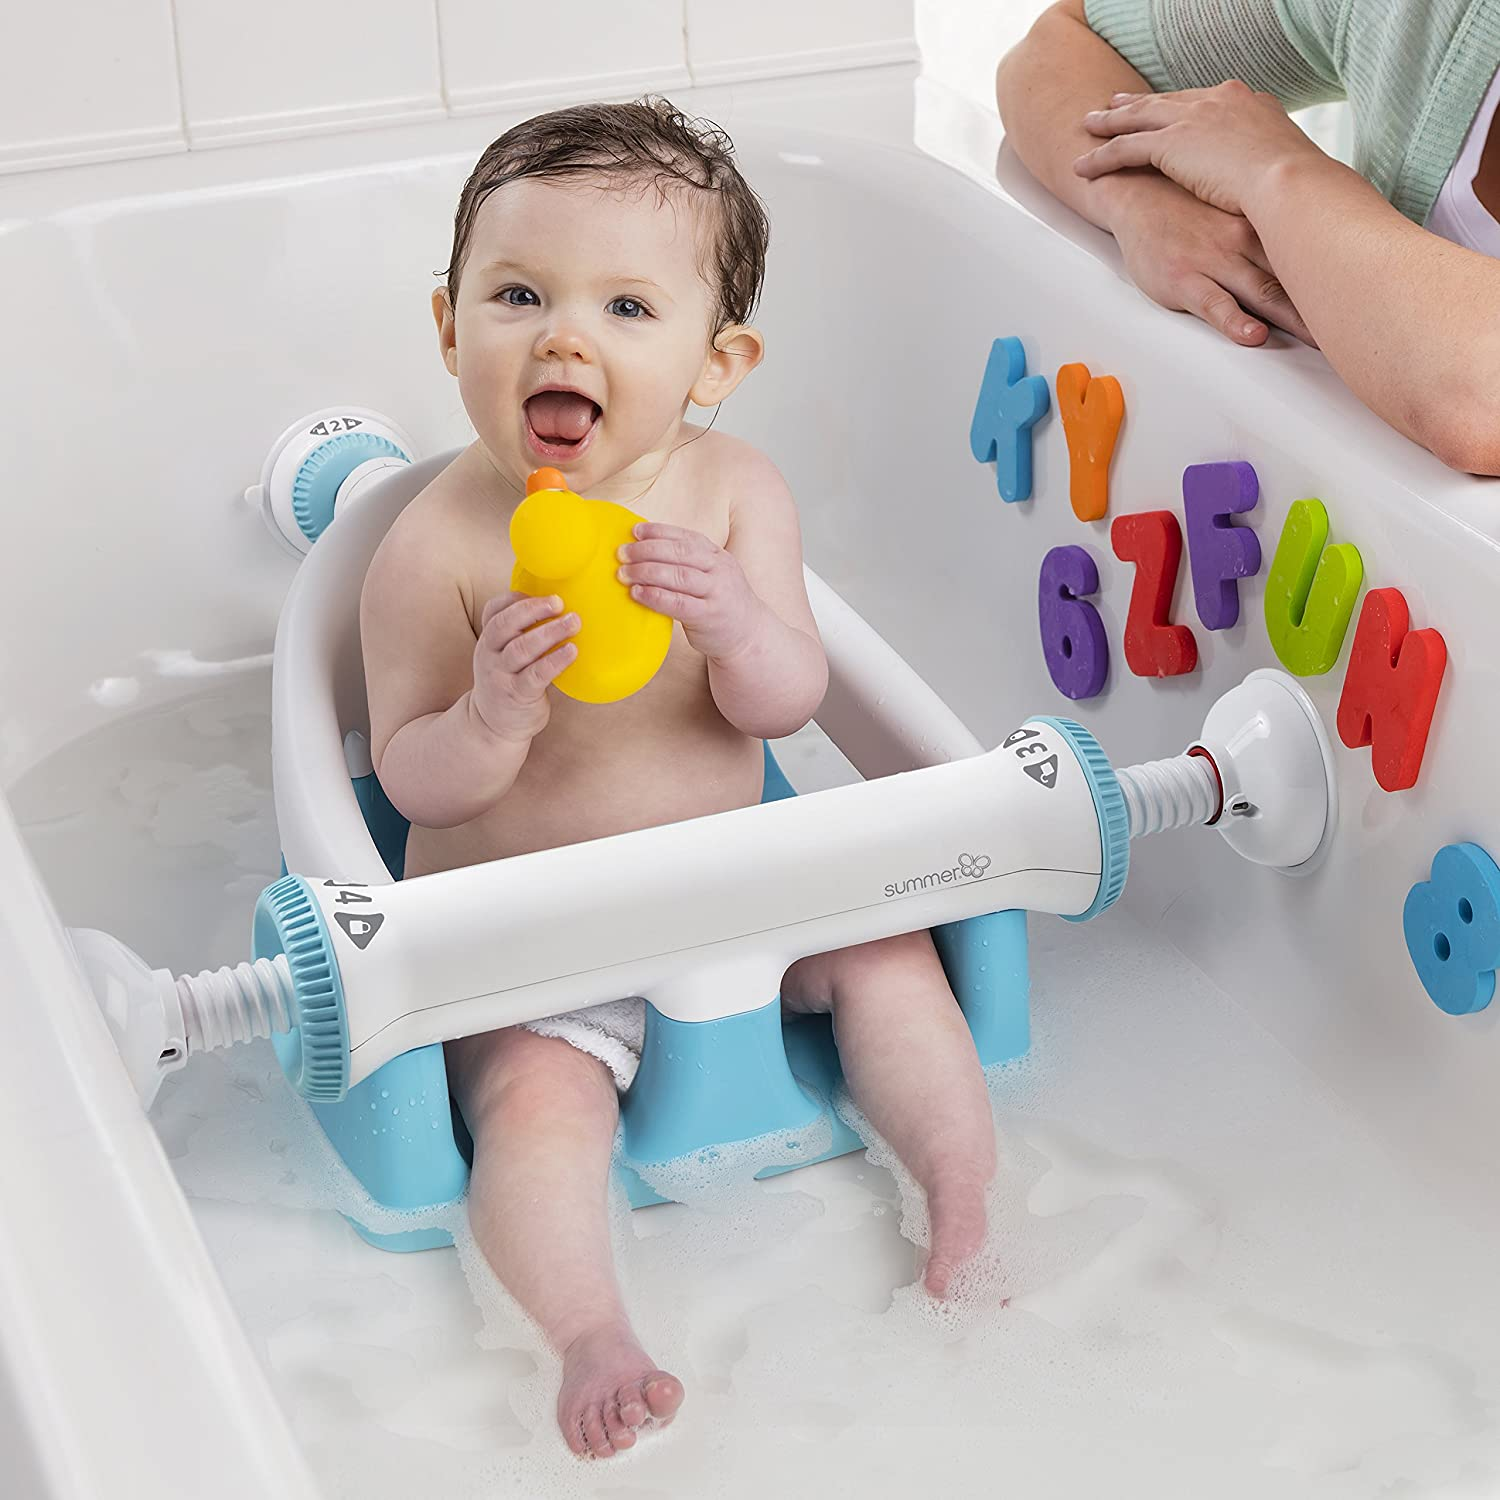 Summer My Bath Seat, Baby Bathtub Seat for Sit-Up Bathing with Backrest Support and Suction Cups for Stability : Baby